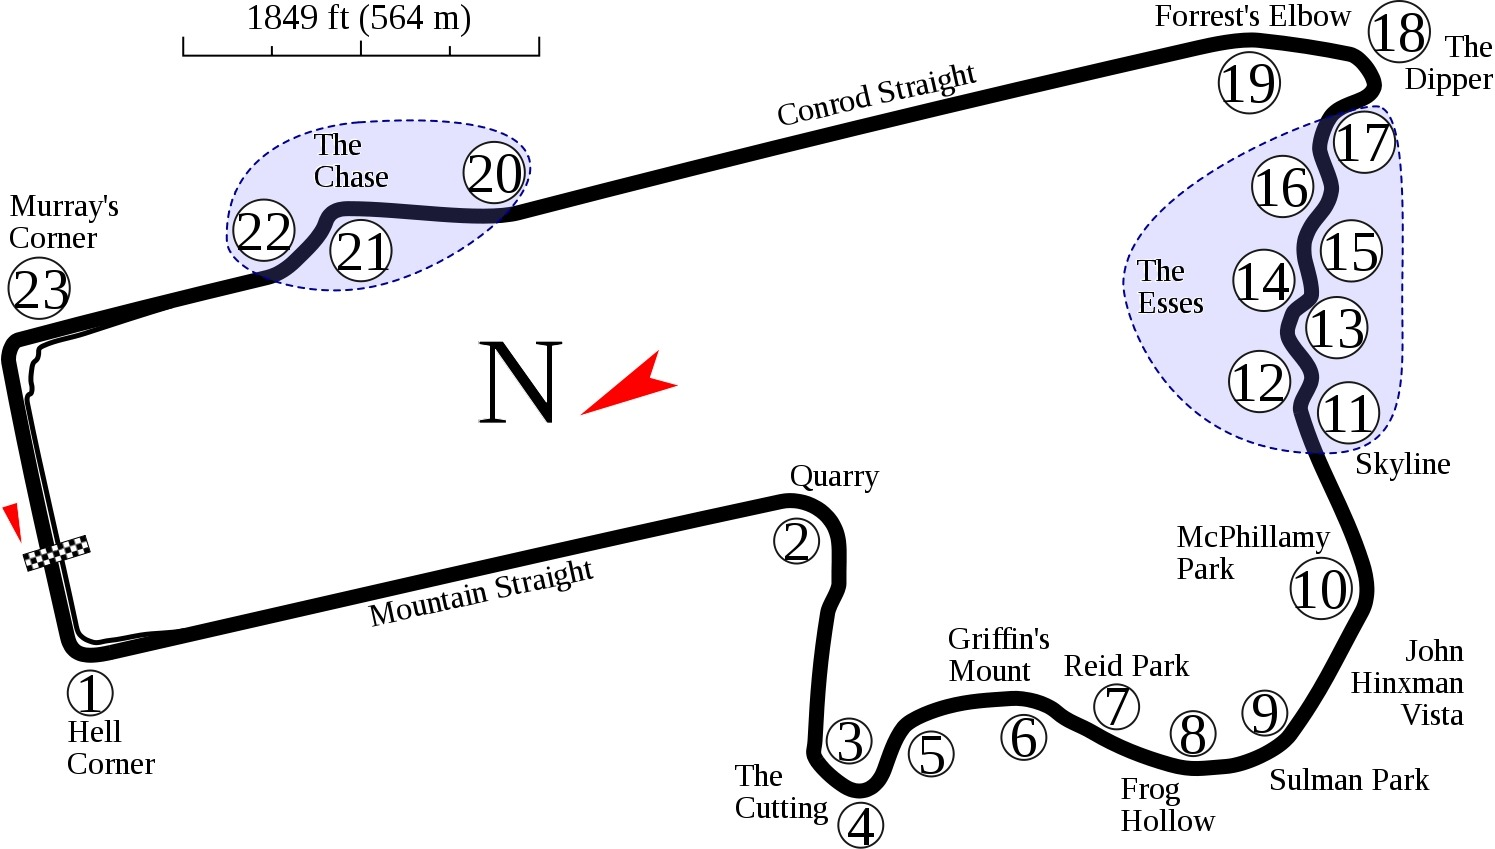 "The Mount Panorama circuit is rather more interesting than the Daytona one. Like the girls in the Petticoat Junction TV series ""Lots of curves you bet..."". Though seeing it in a two dimensional map really doesn't do it justice."